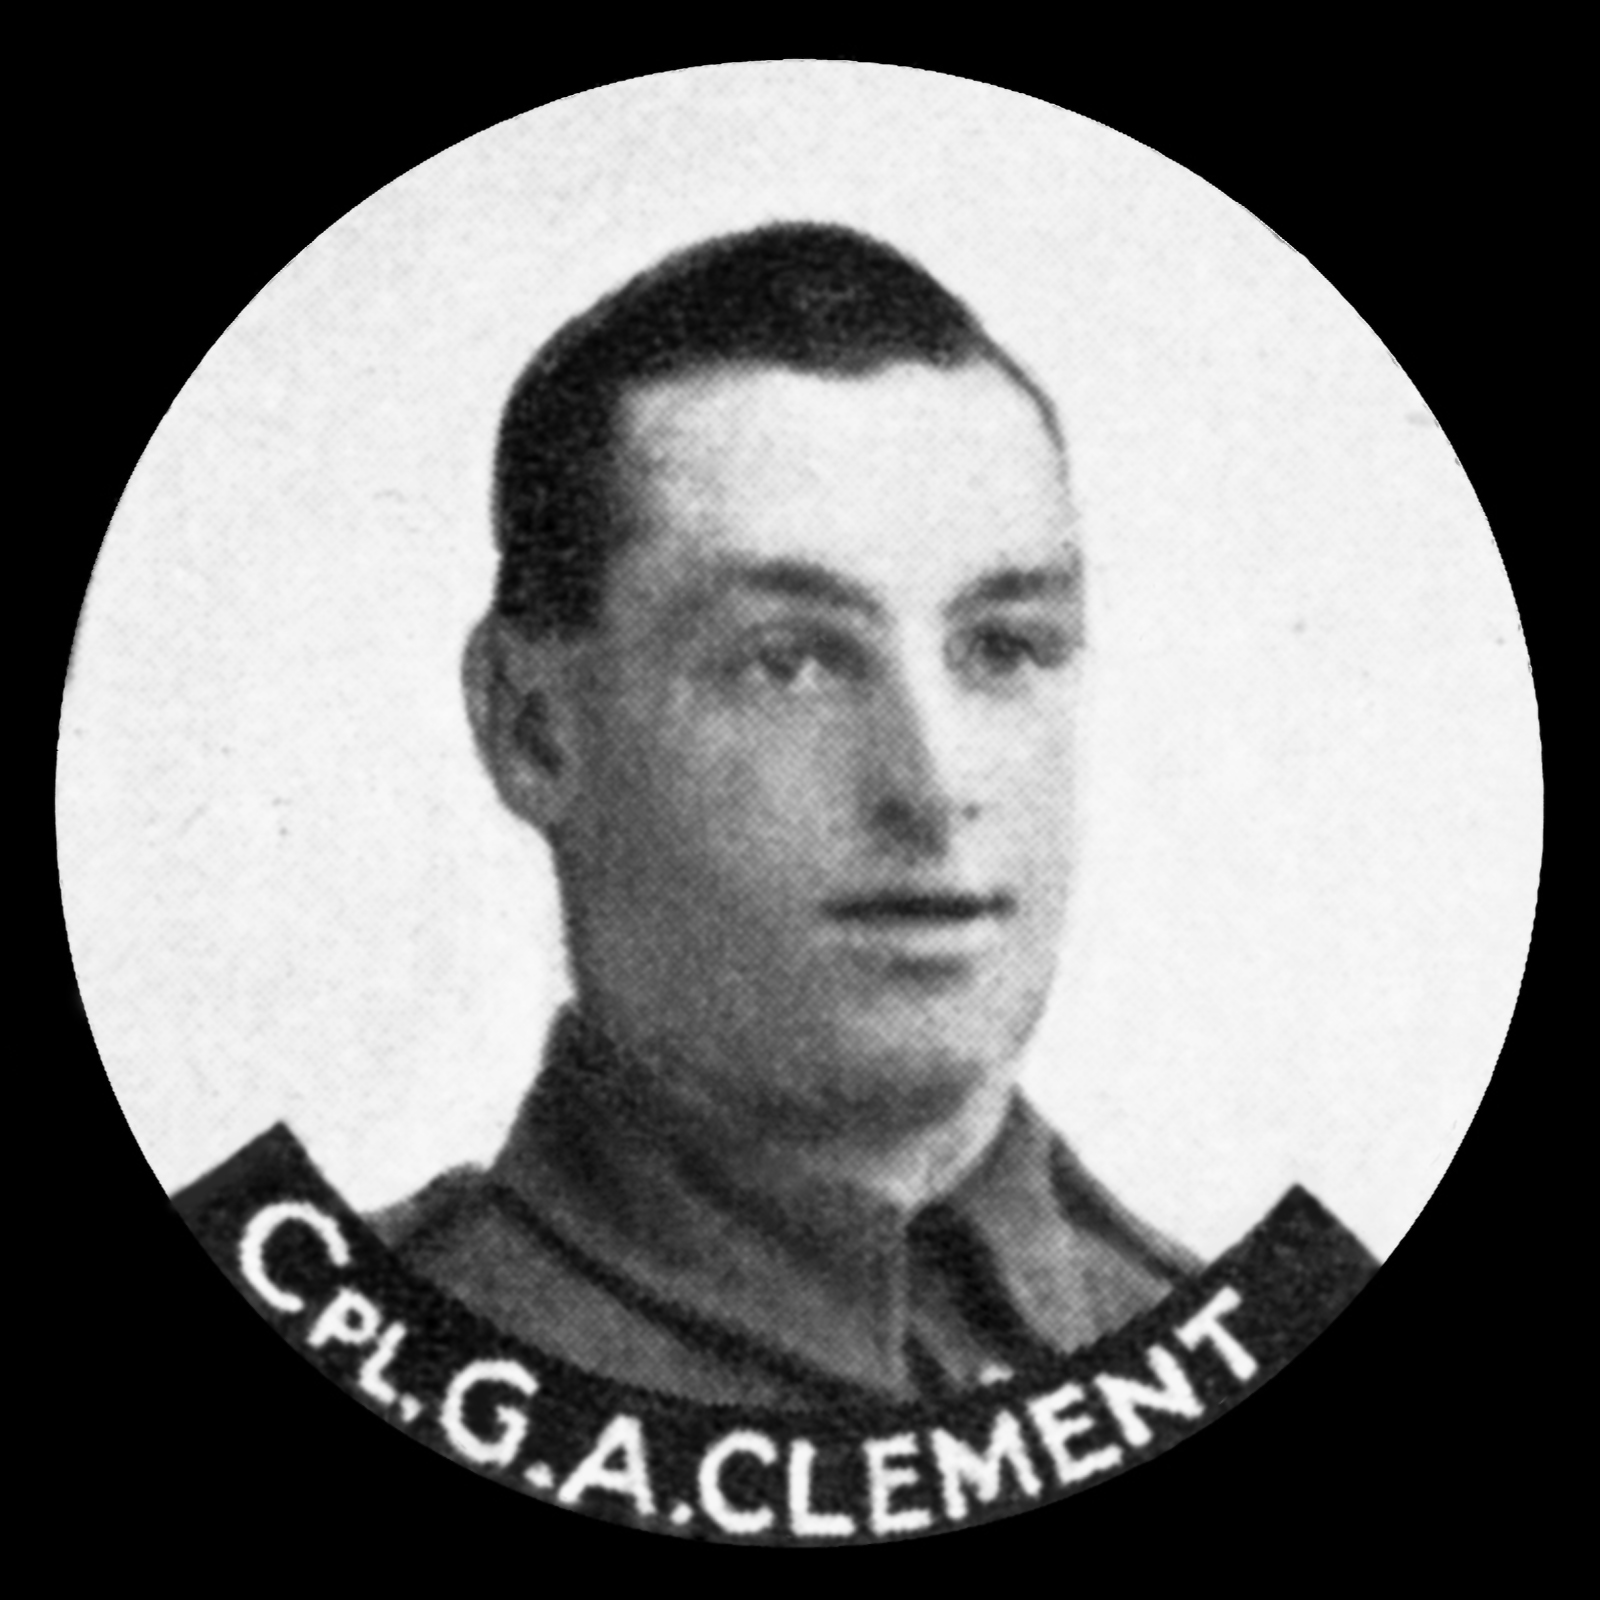 CLEMENT George Alfred